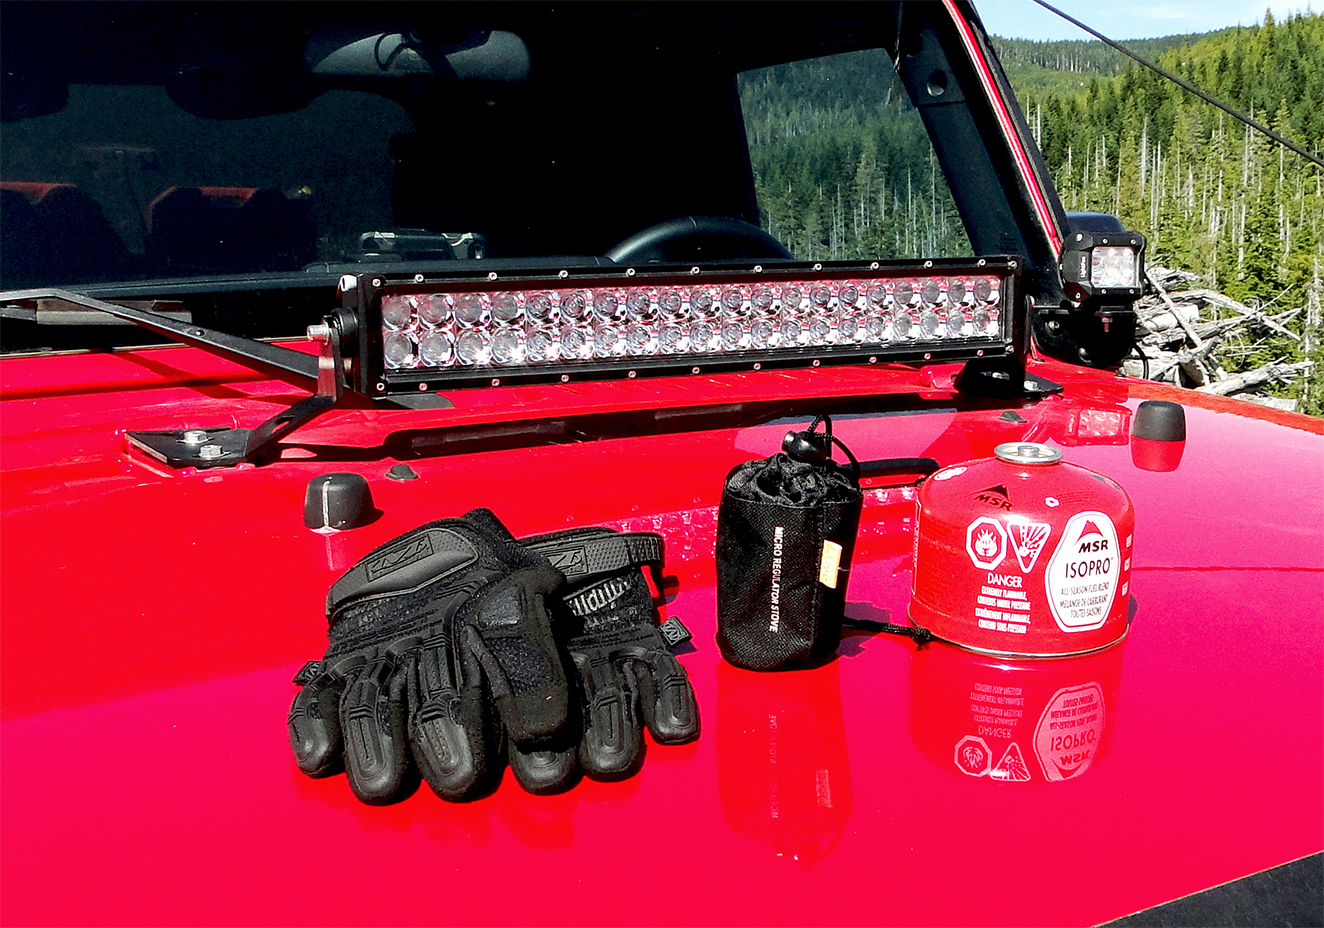 MSR Compact Stove Off-Road Expedition